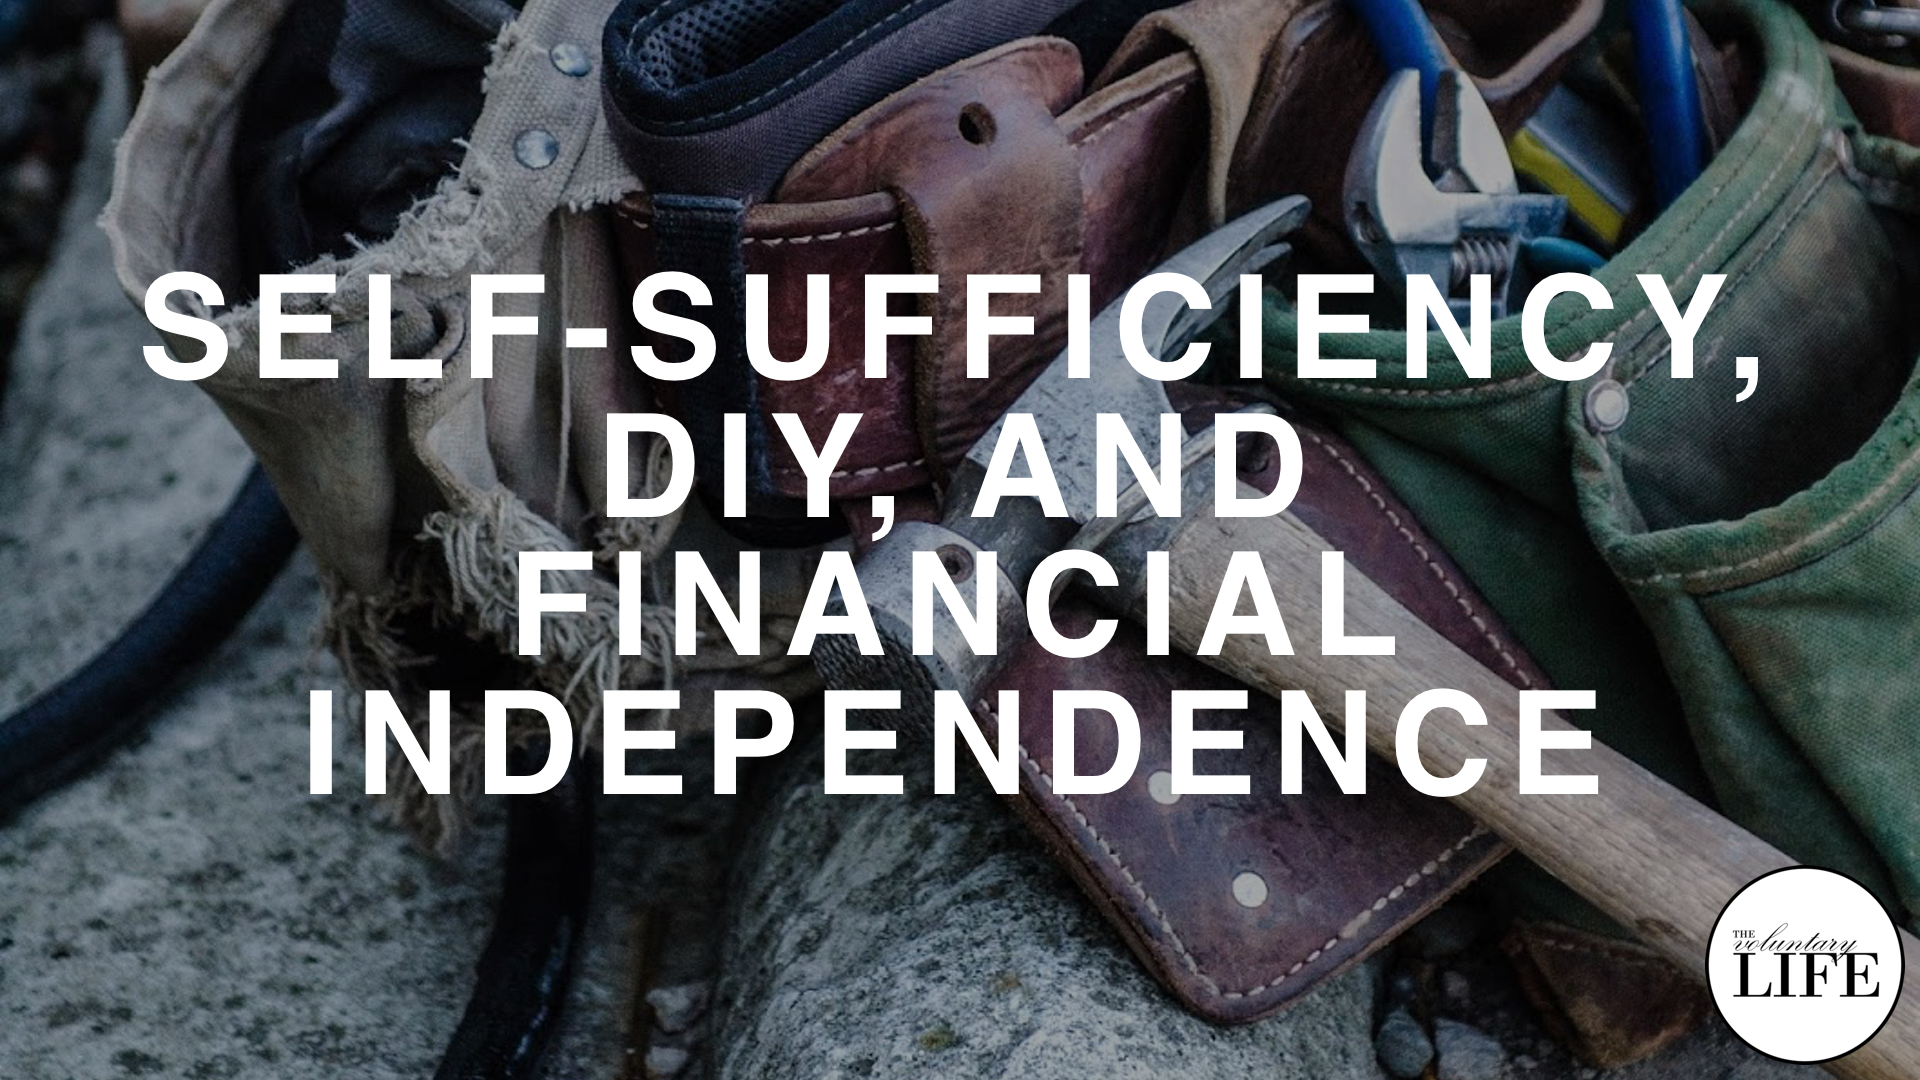 266 Self-Sufficiency And DIY: Good For Financial Independence?